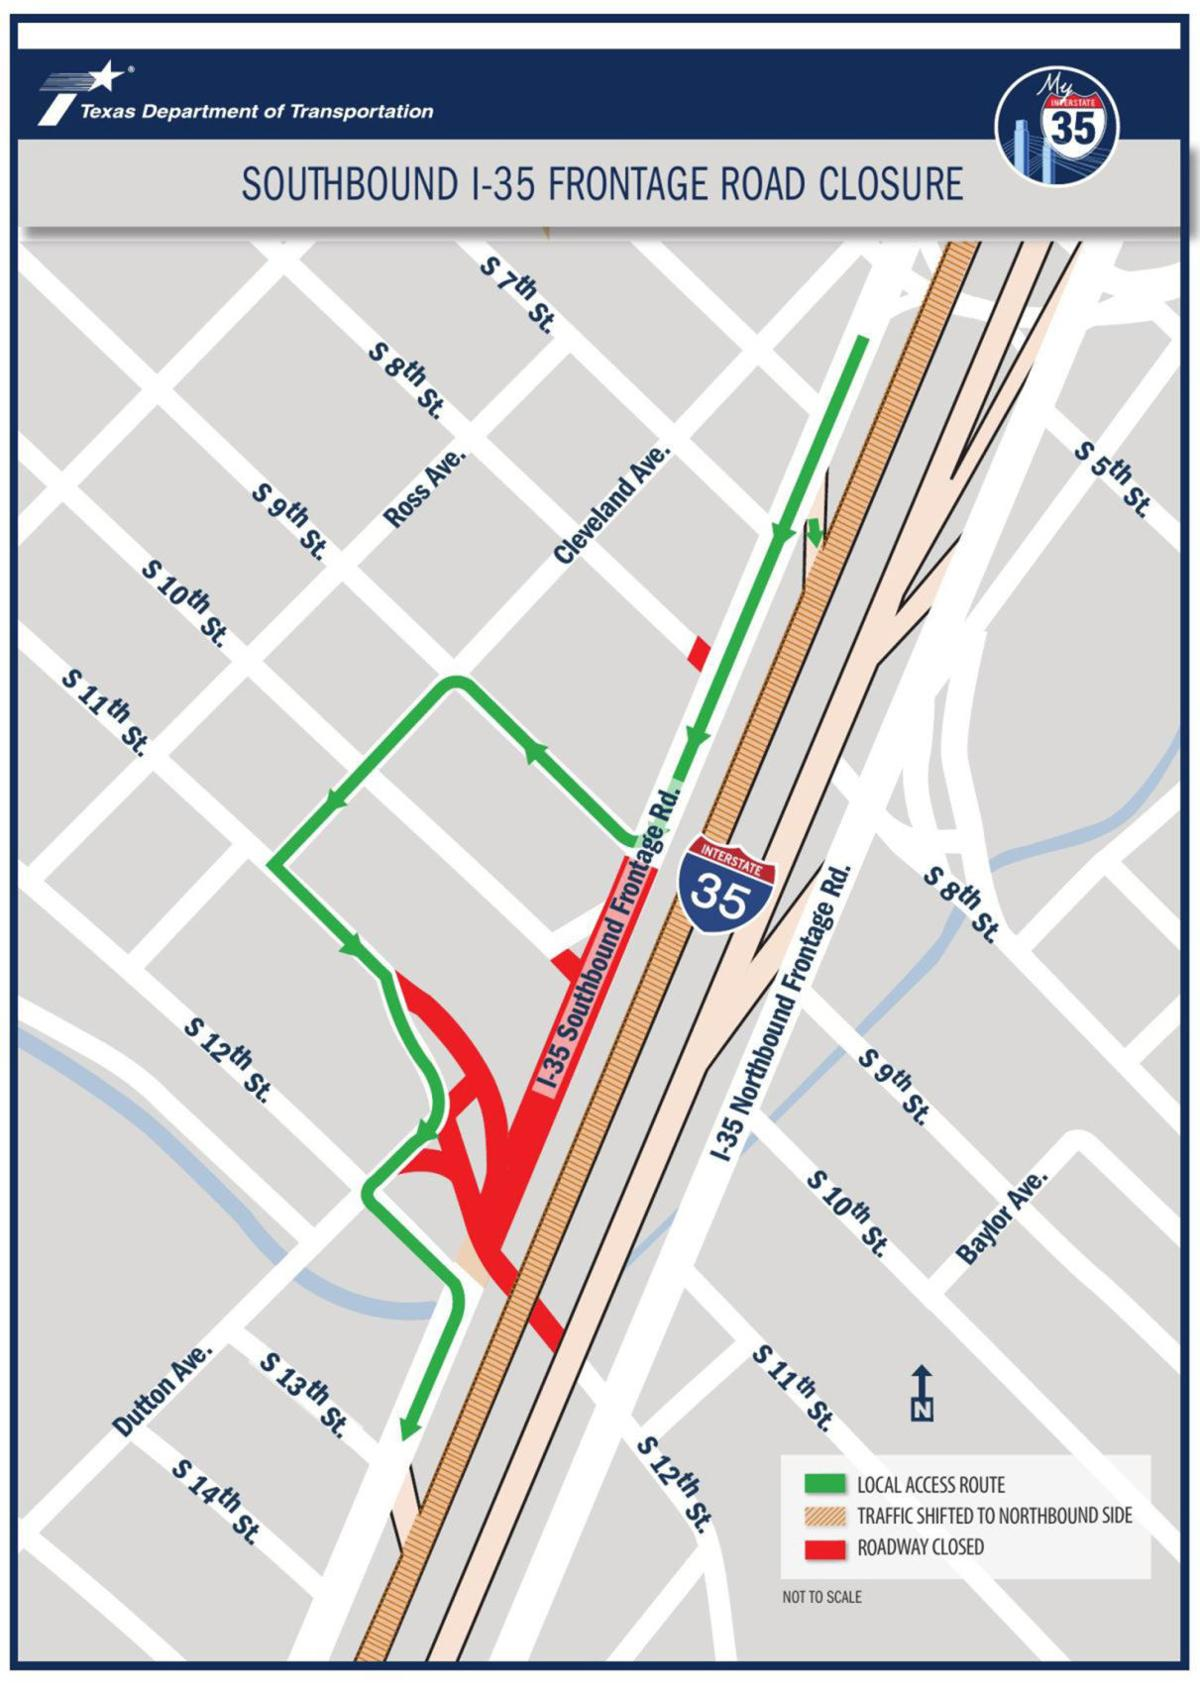 Downtown frontage road closures